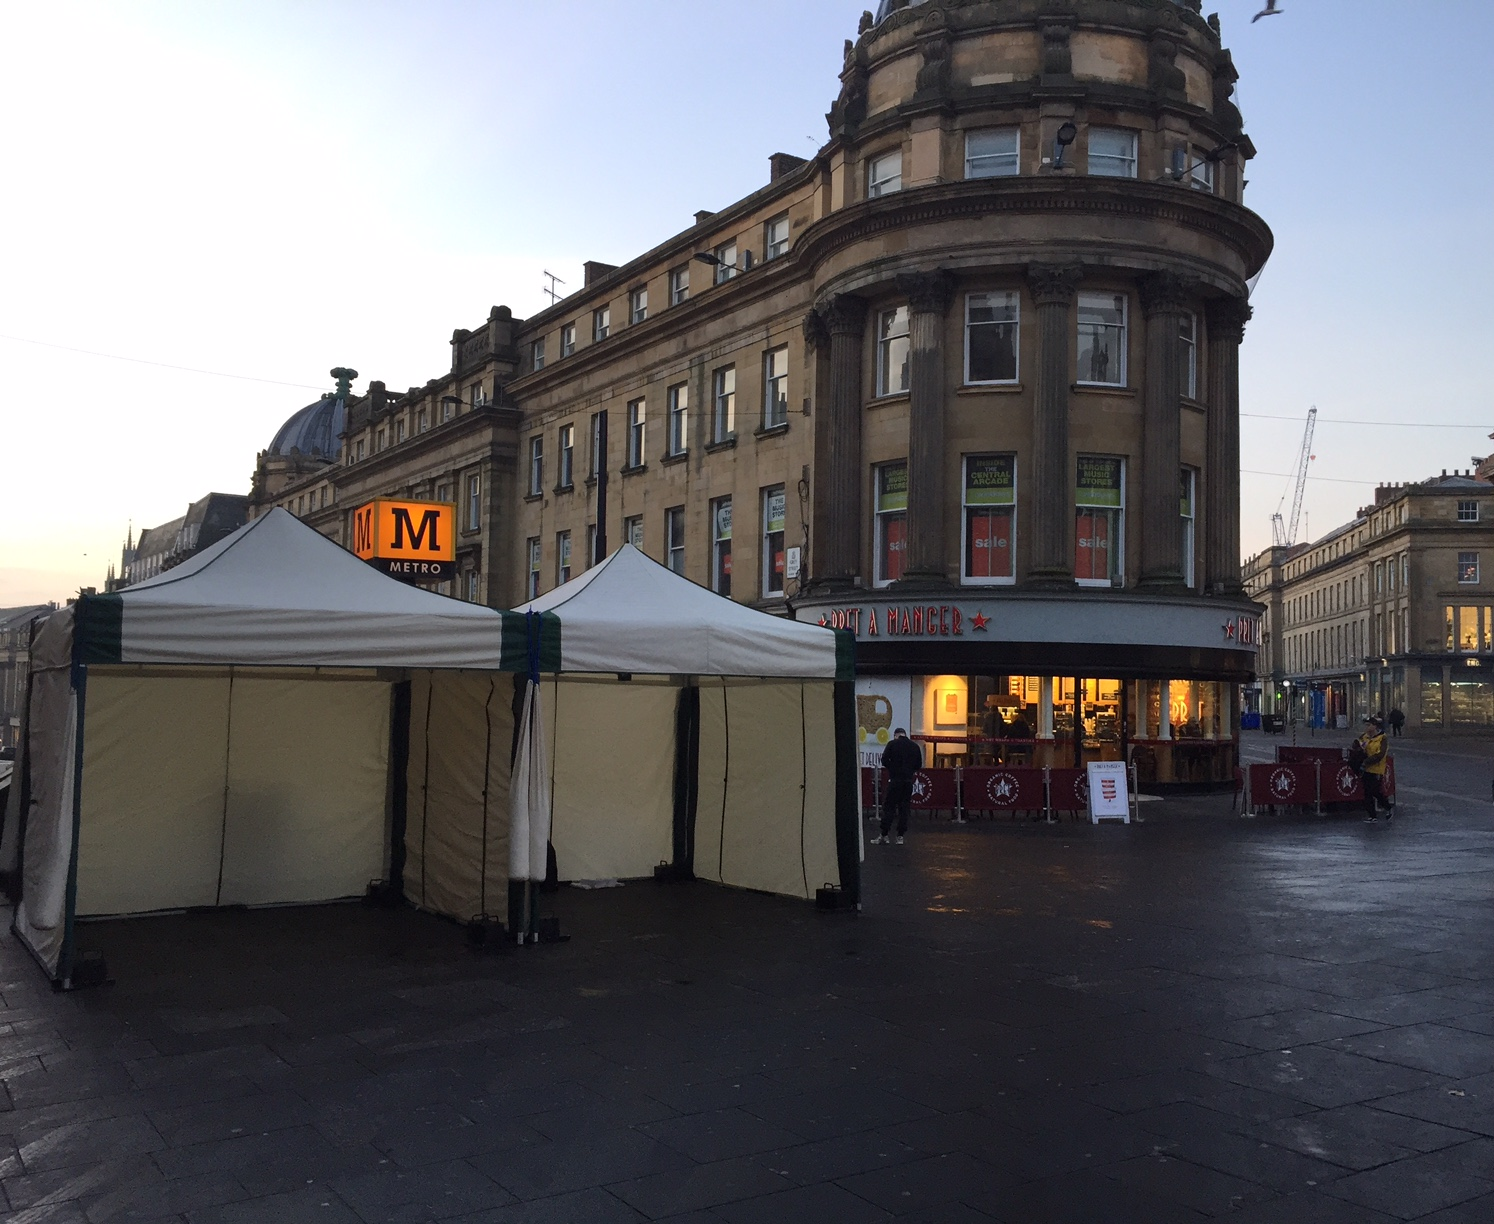 wedding chair covers newcastle upon tyne rocking walmart monumental marquees at greys monument